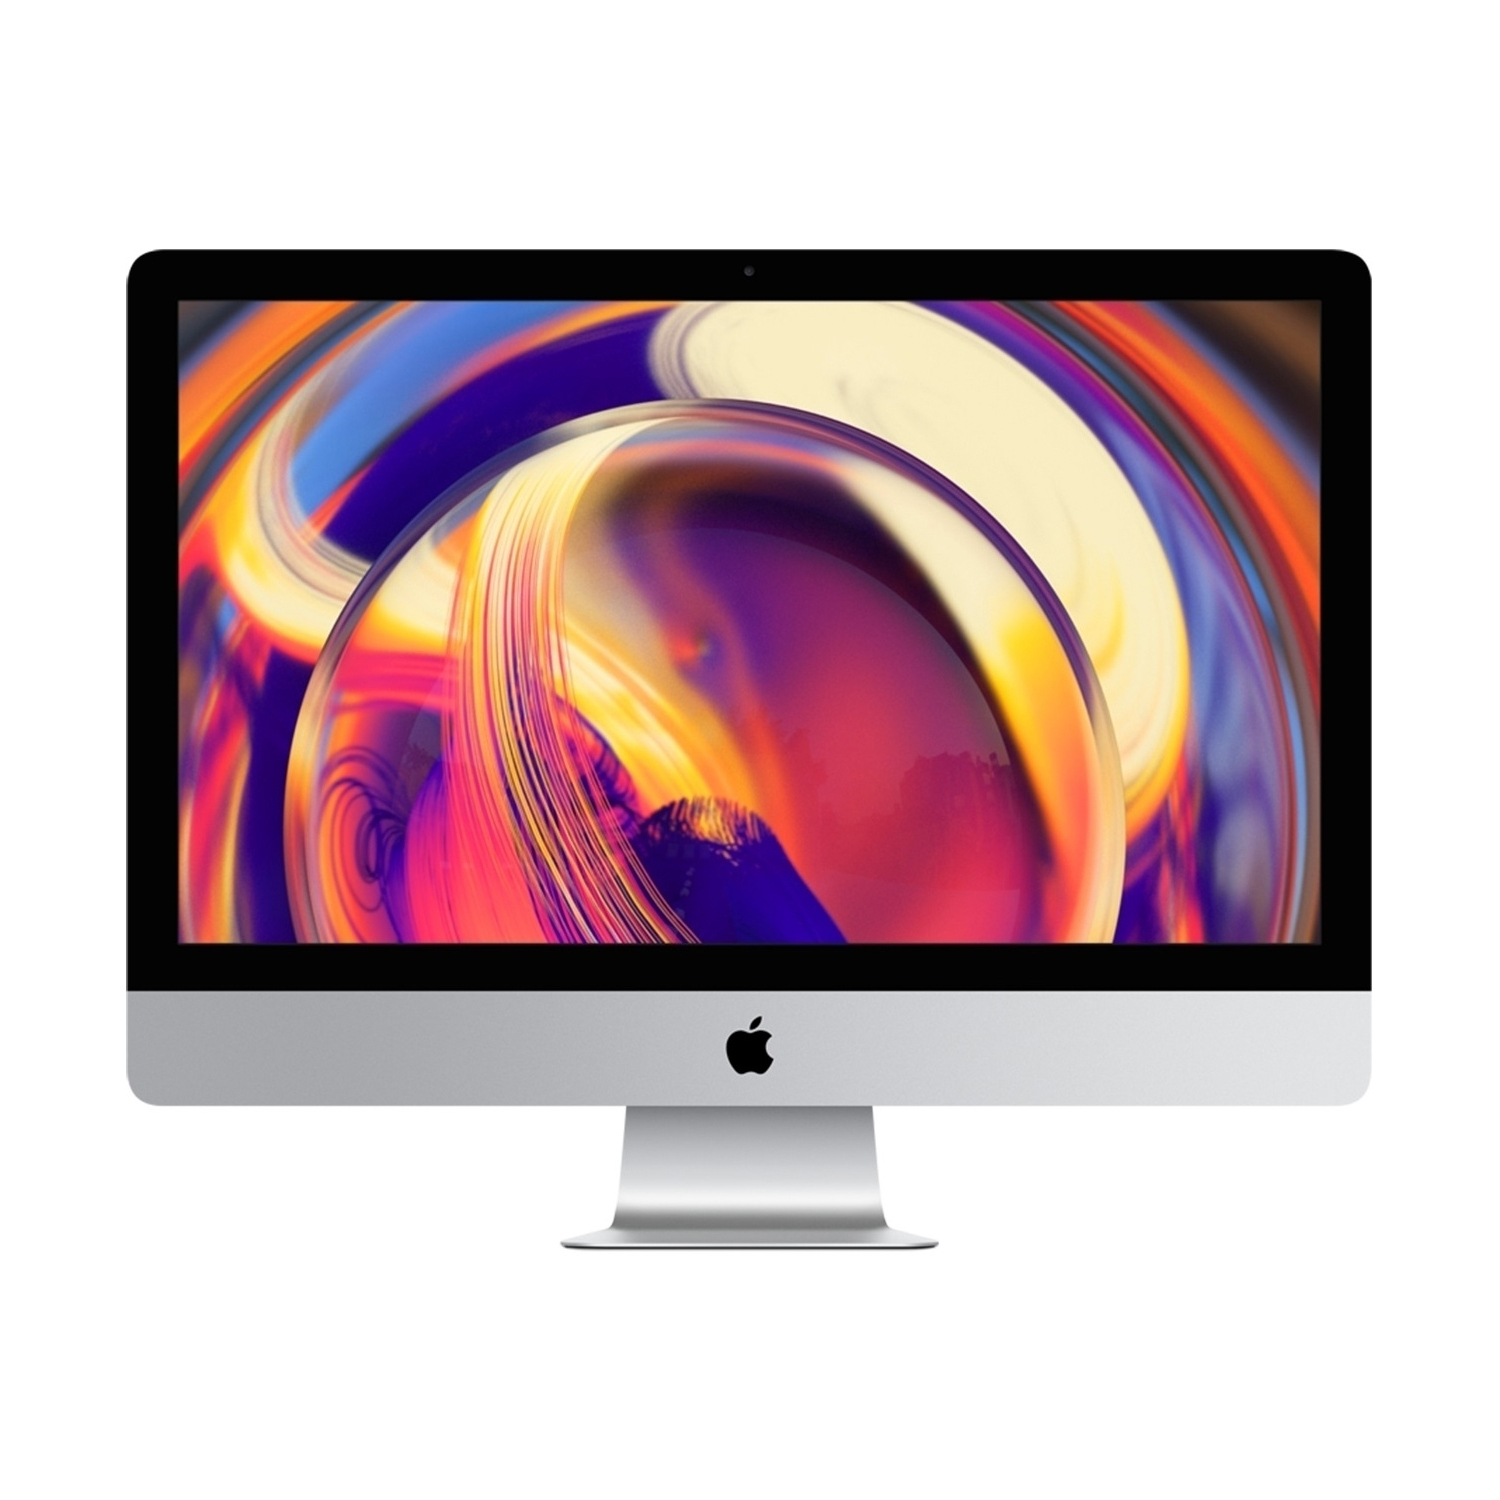 Apple iMac 27inch 8th Generation MacOS 5K Display i5 Processor 8GB Ref MRQY2B/A